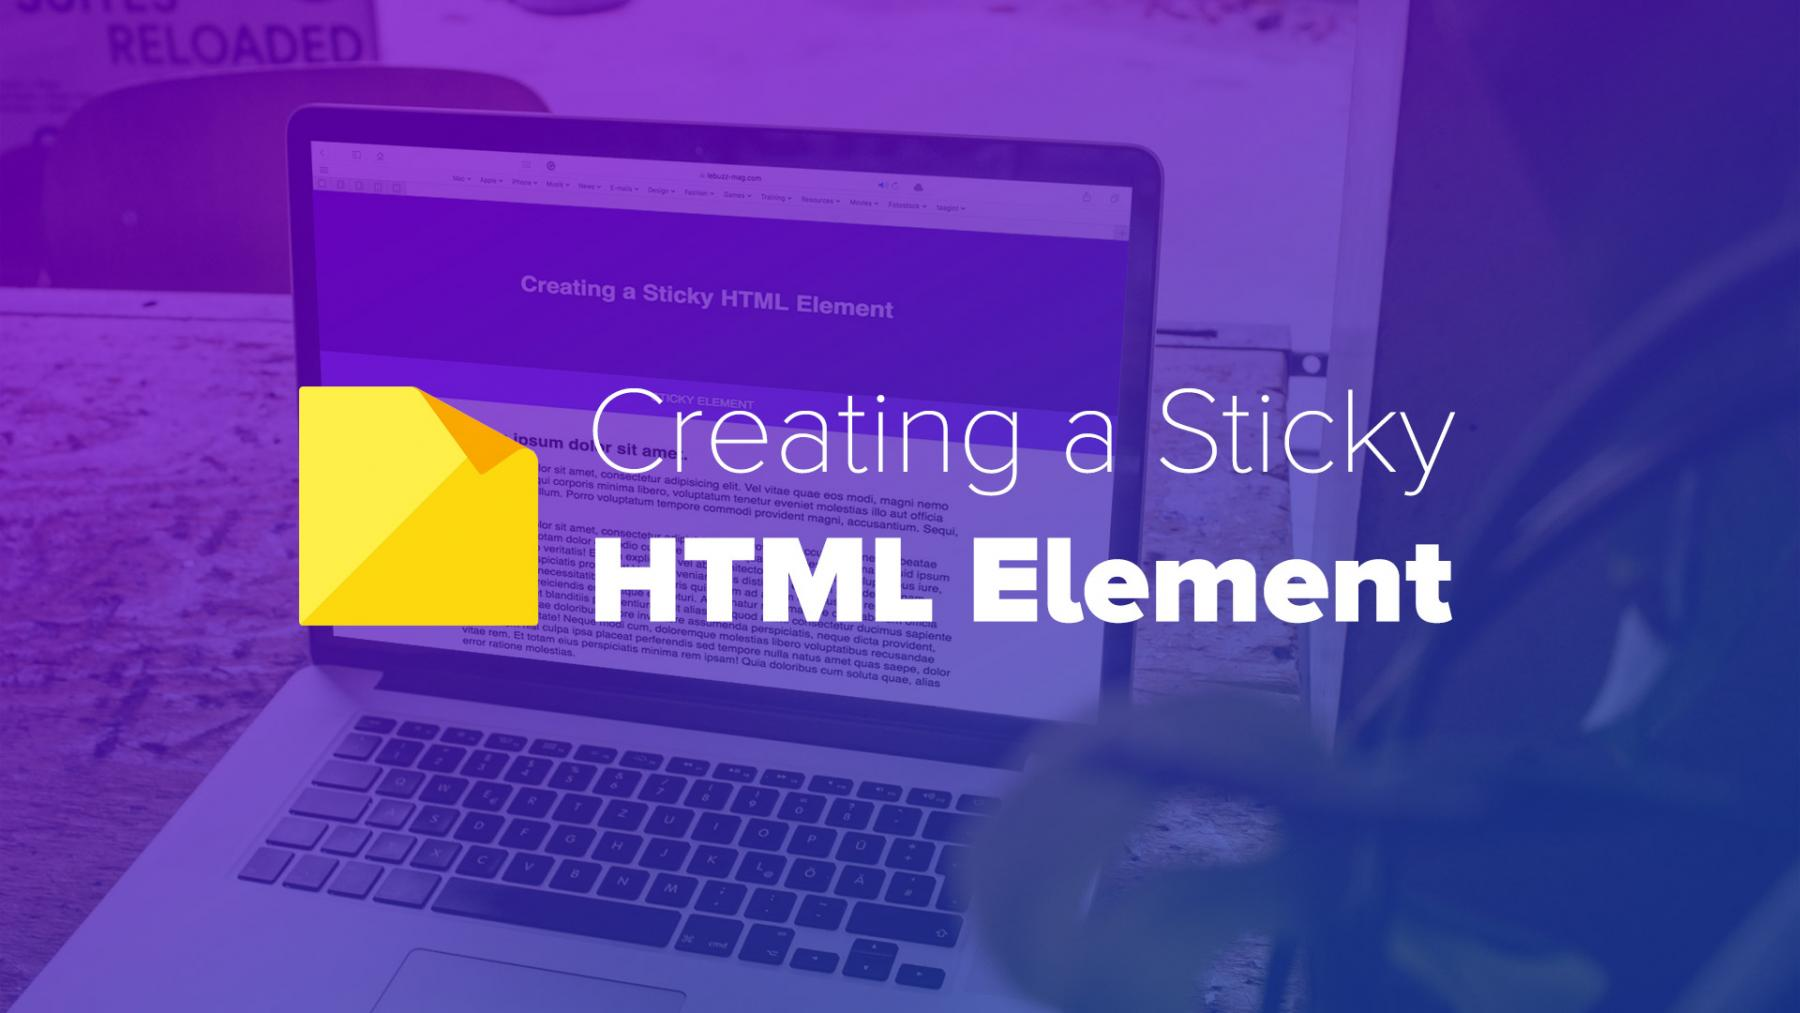 Creating a Sticky HTML Element